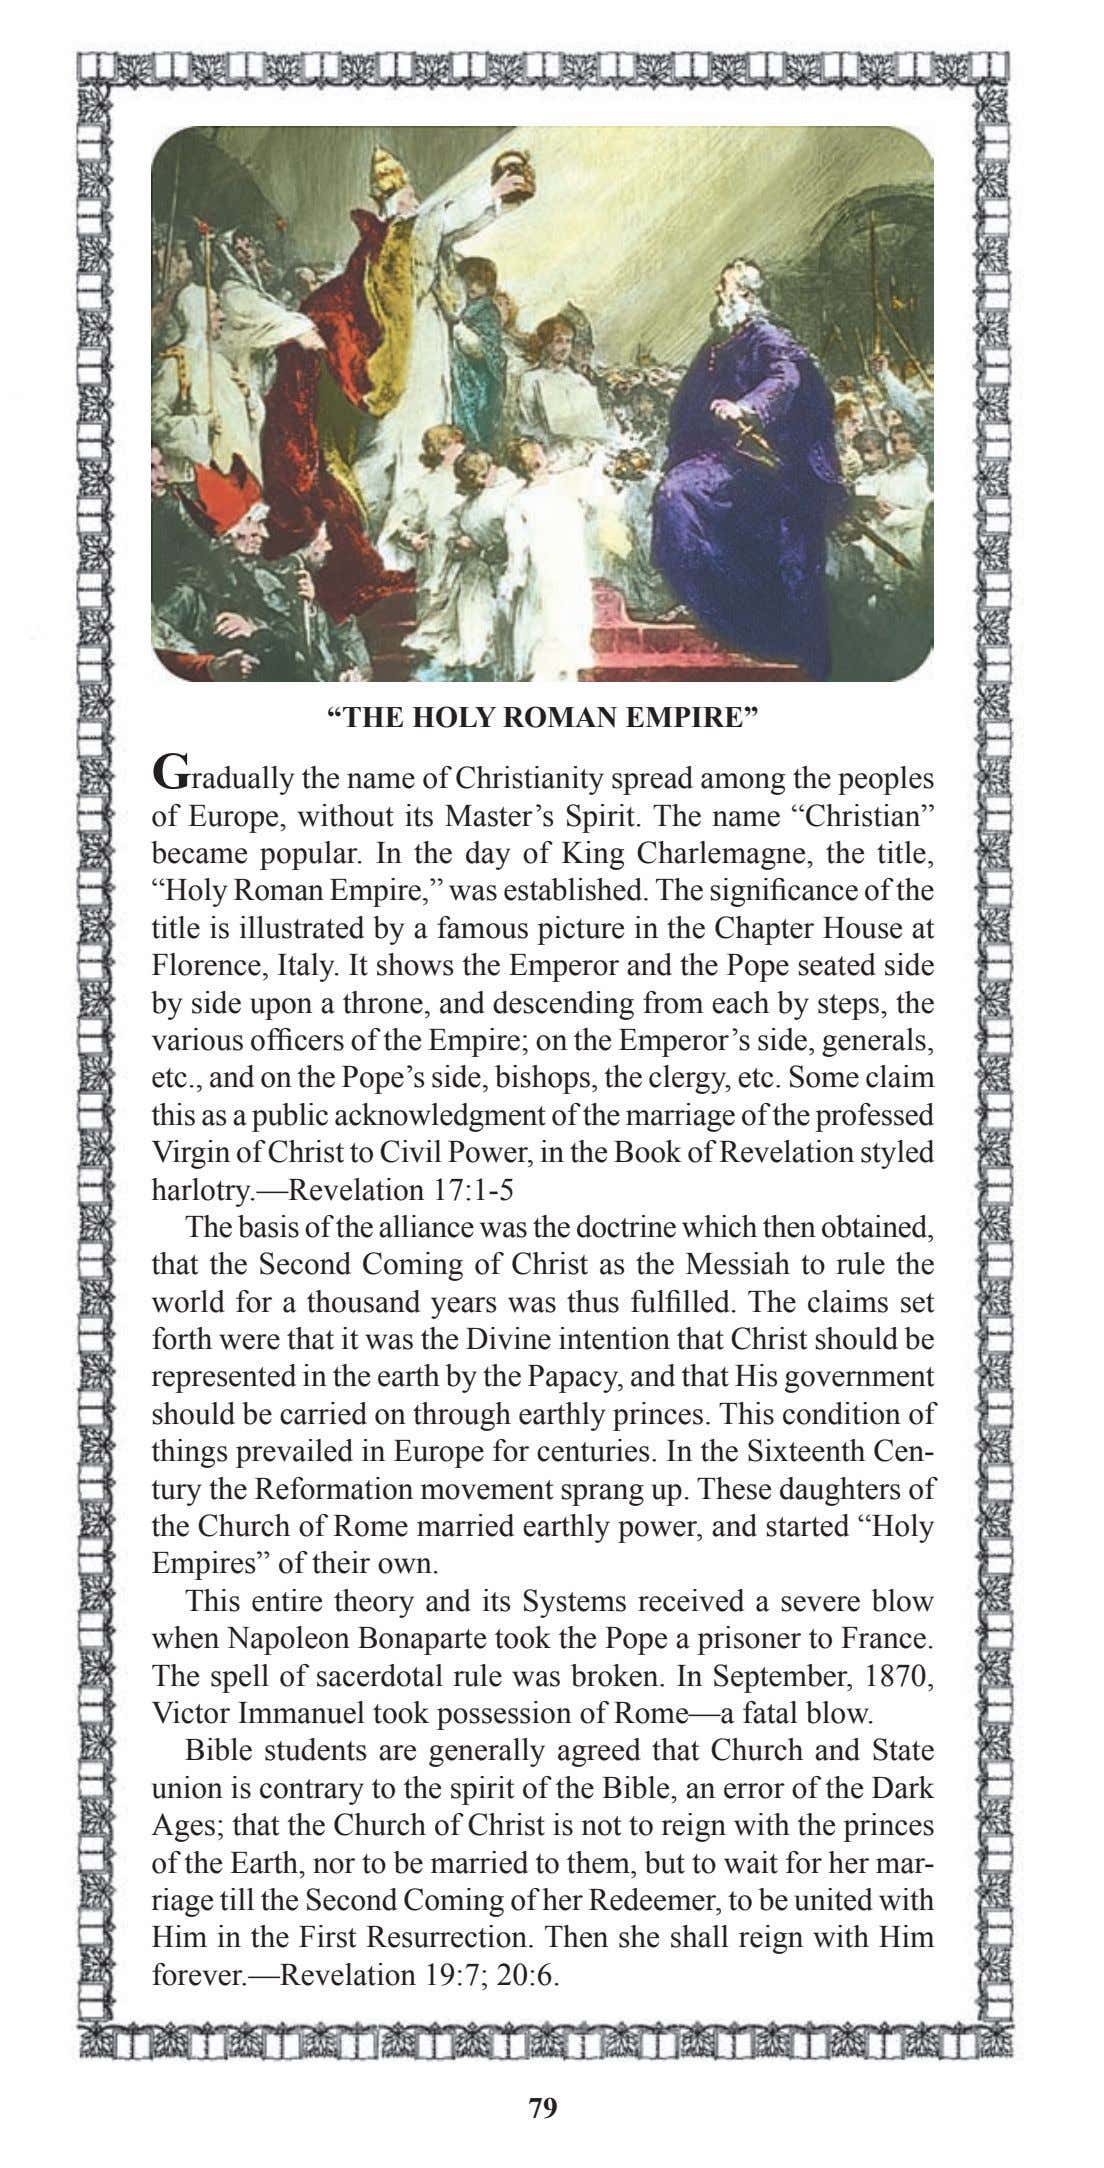 """THE HOLY ROMAN EMPIRE"" Gradually the name of Christianity spread among the peoples of Europe,"